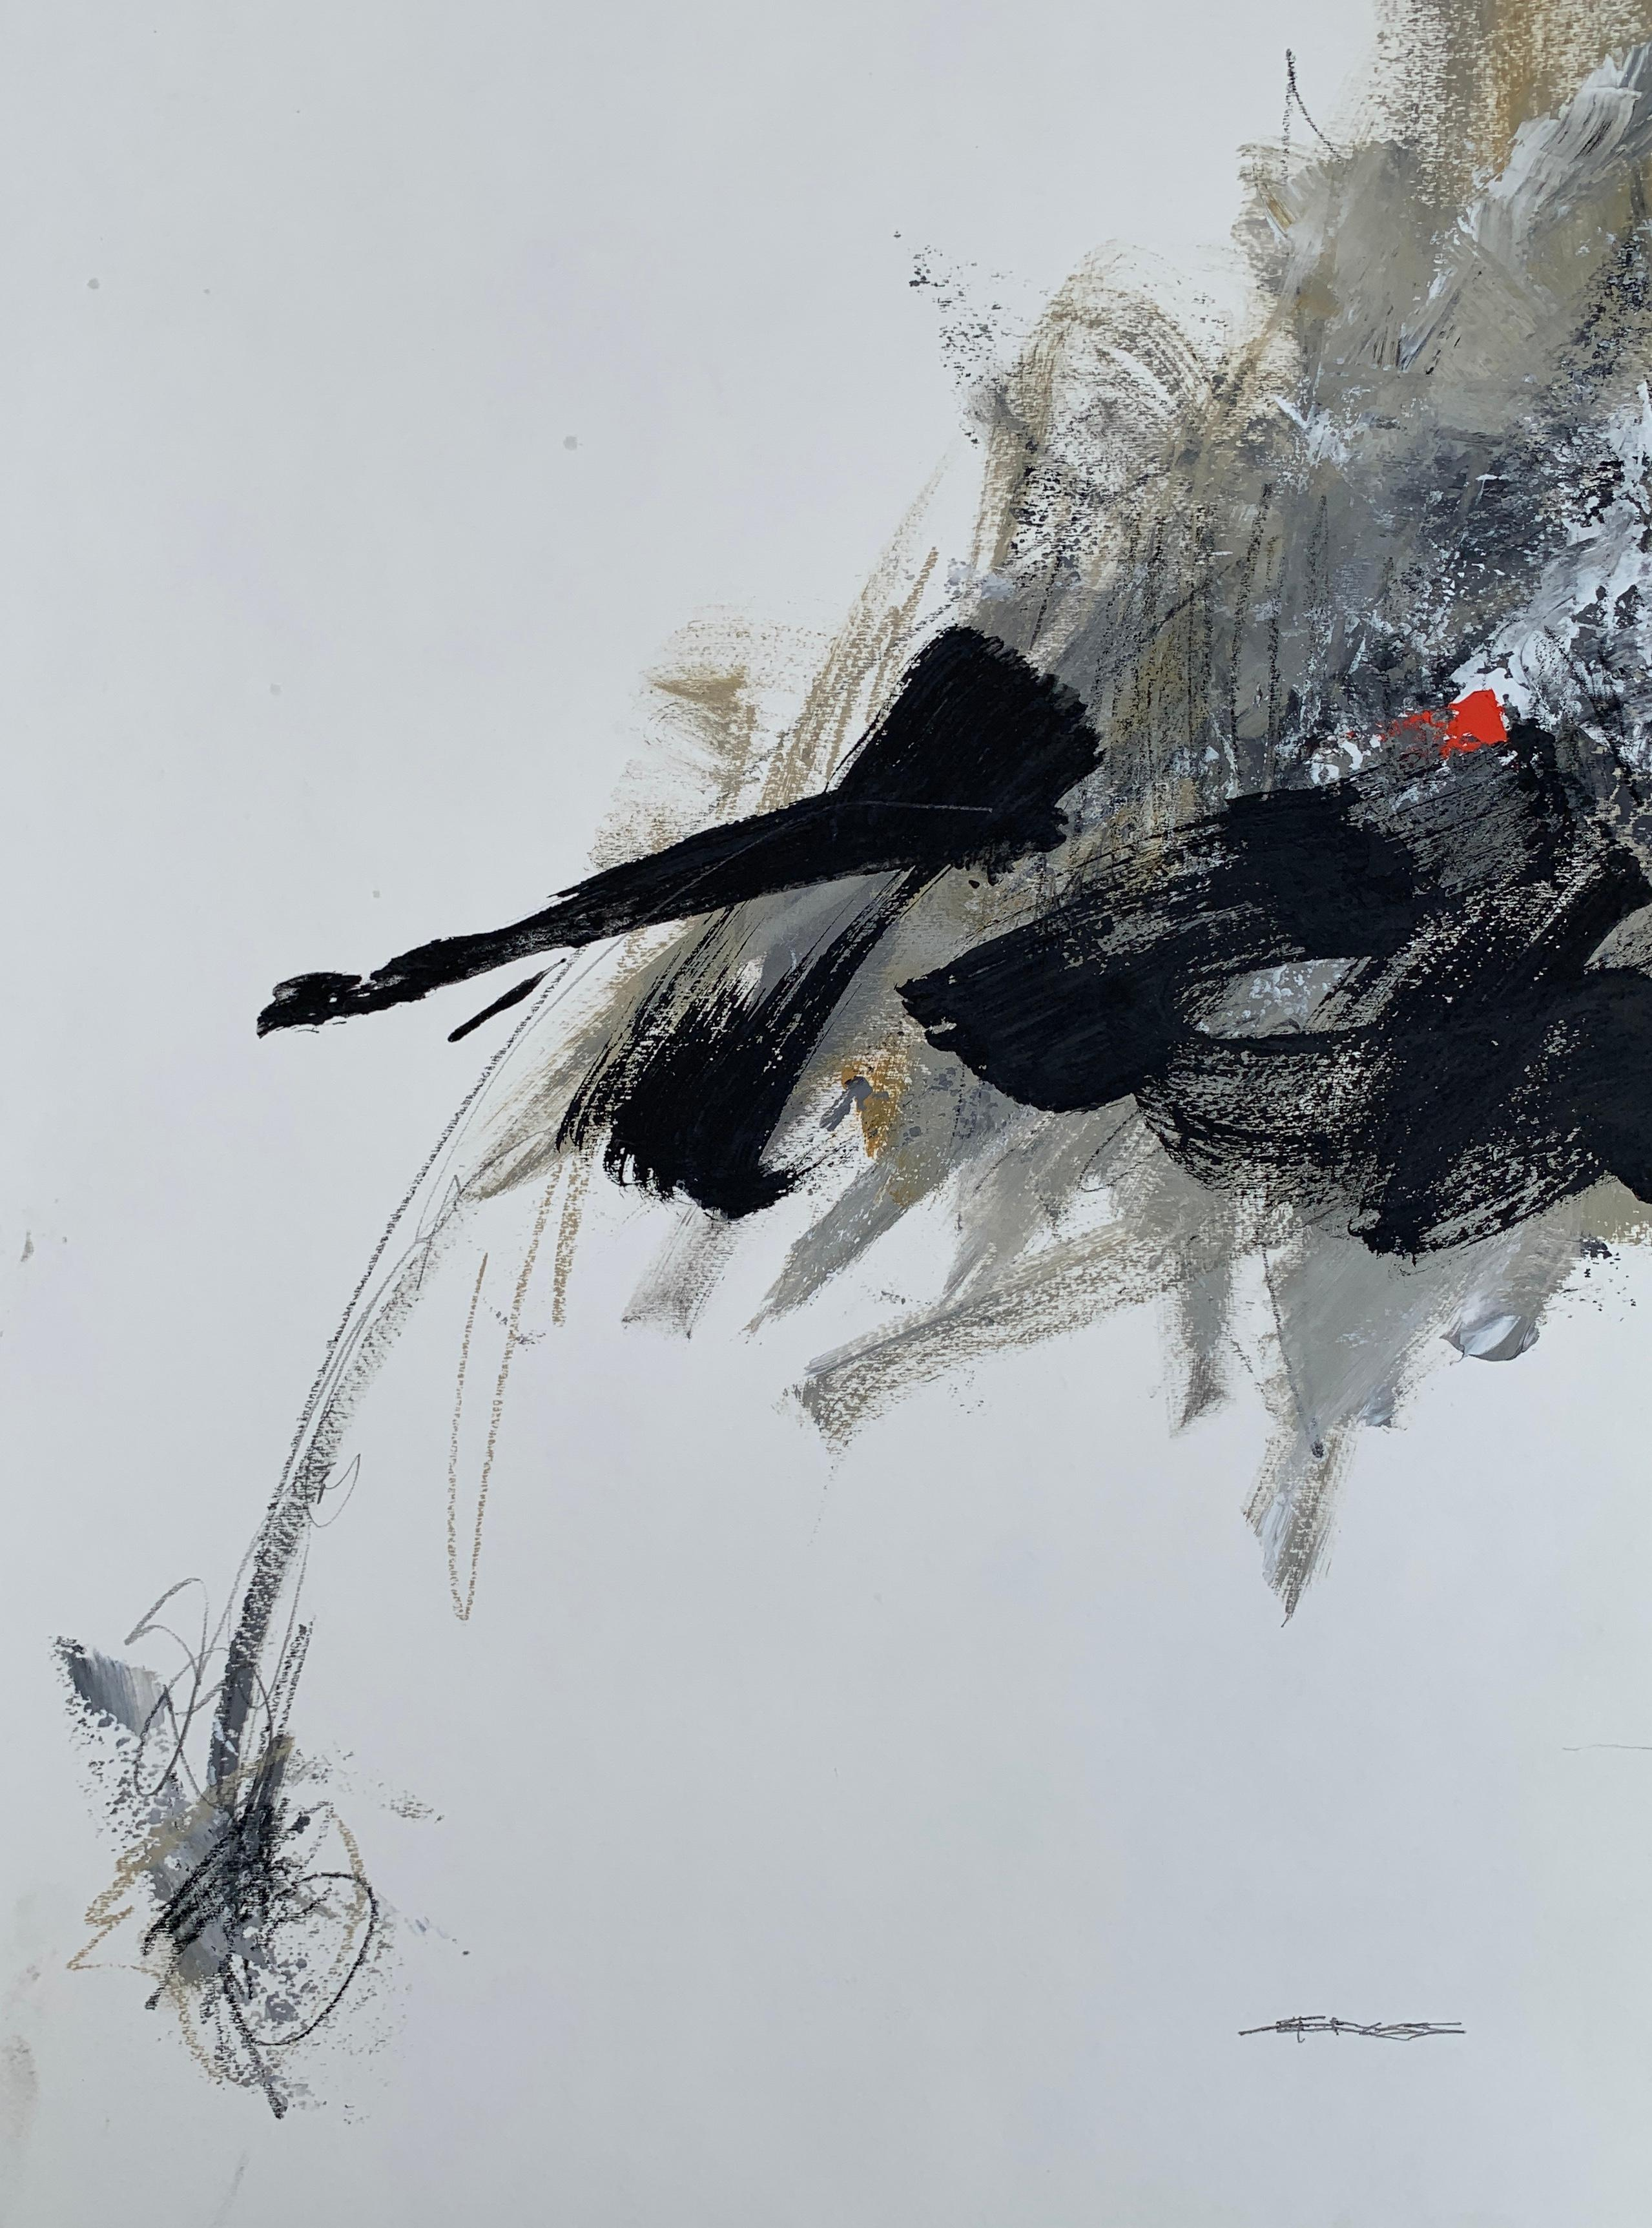 Breakdance by Charles Ross, Vertical Abstract Mixed Media on Paper Painting